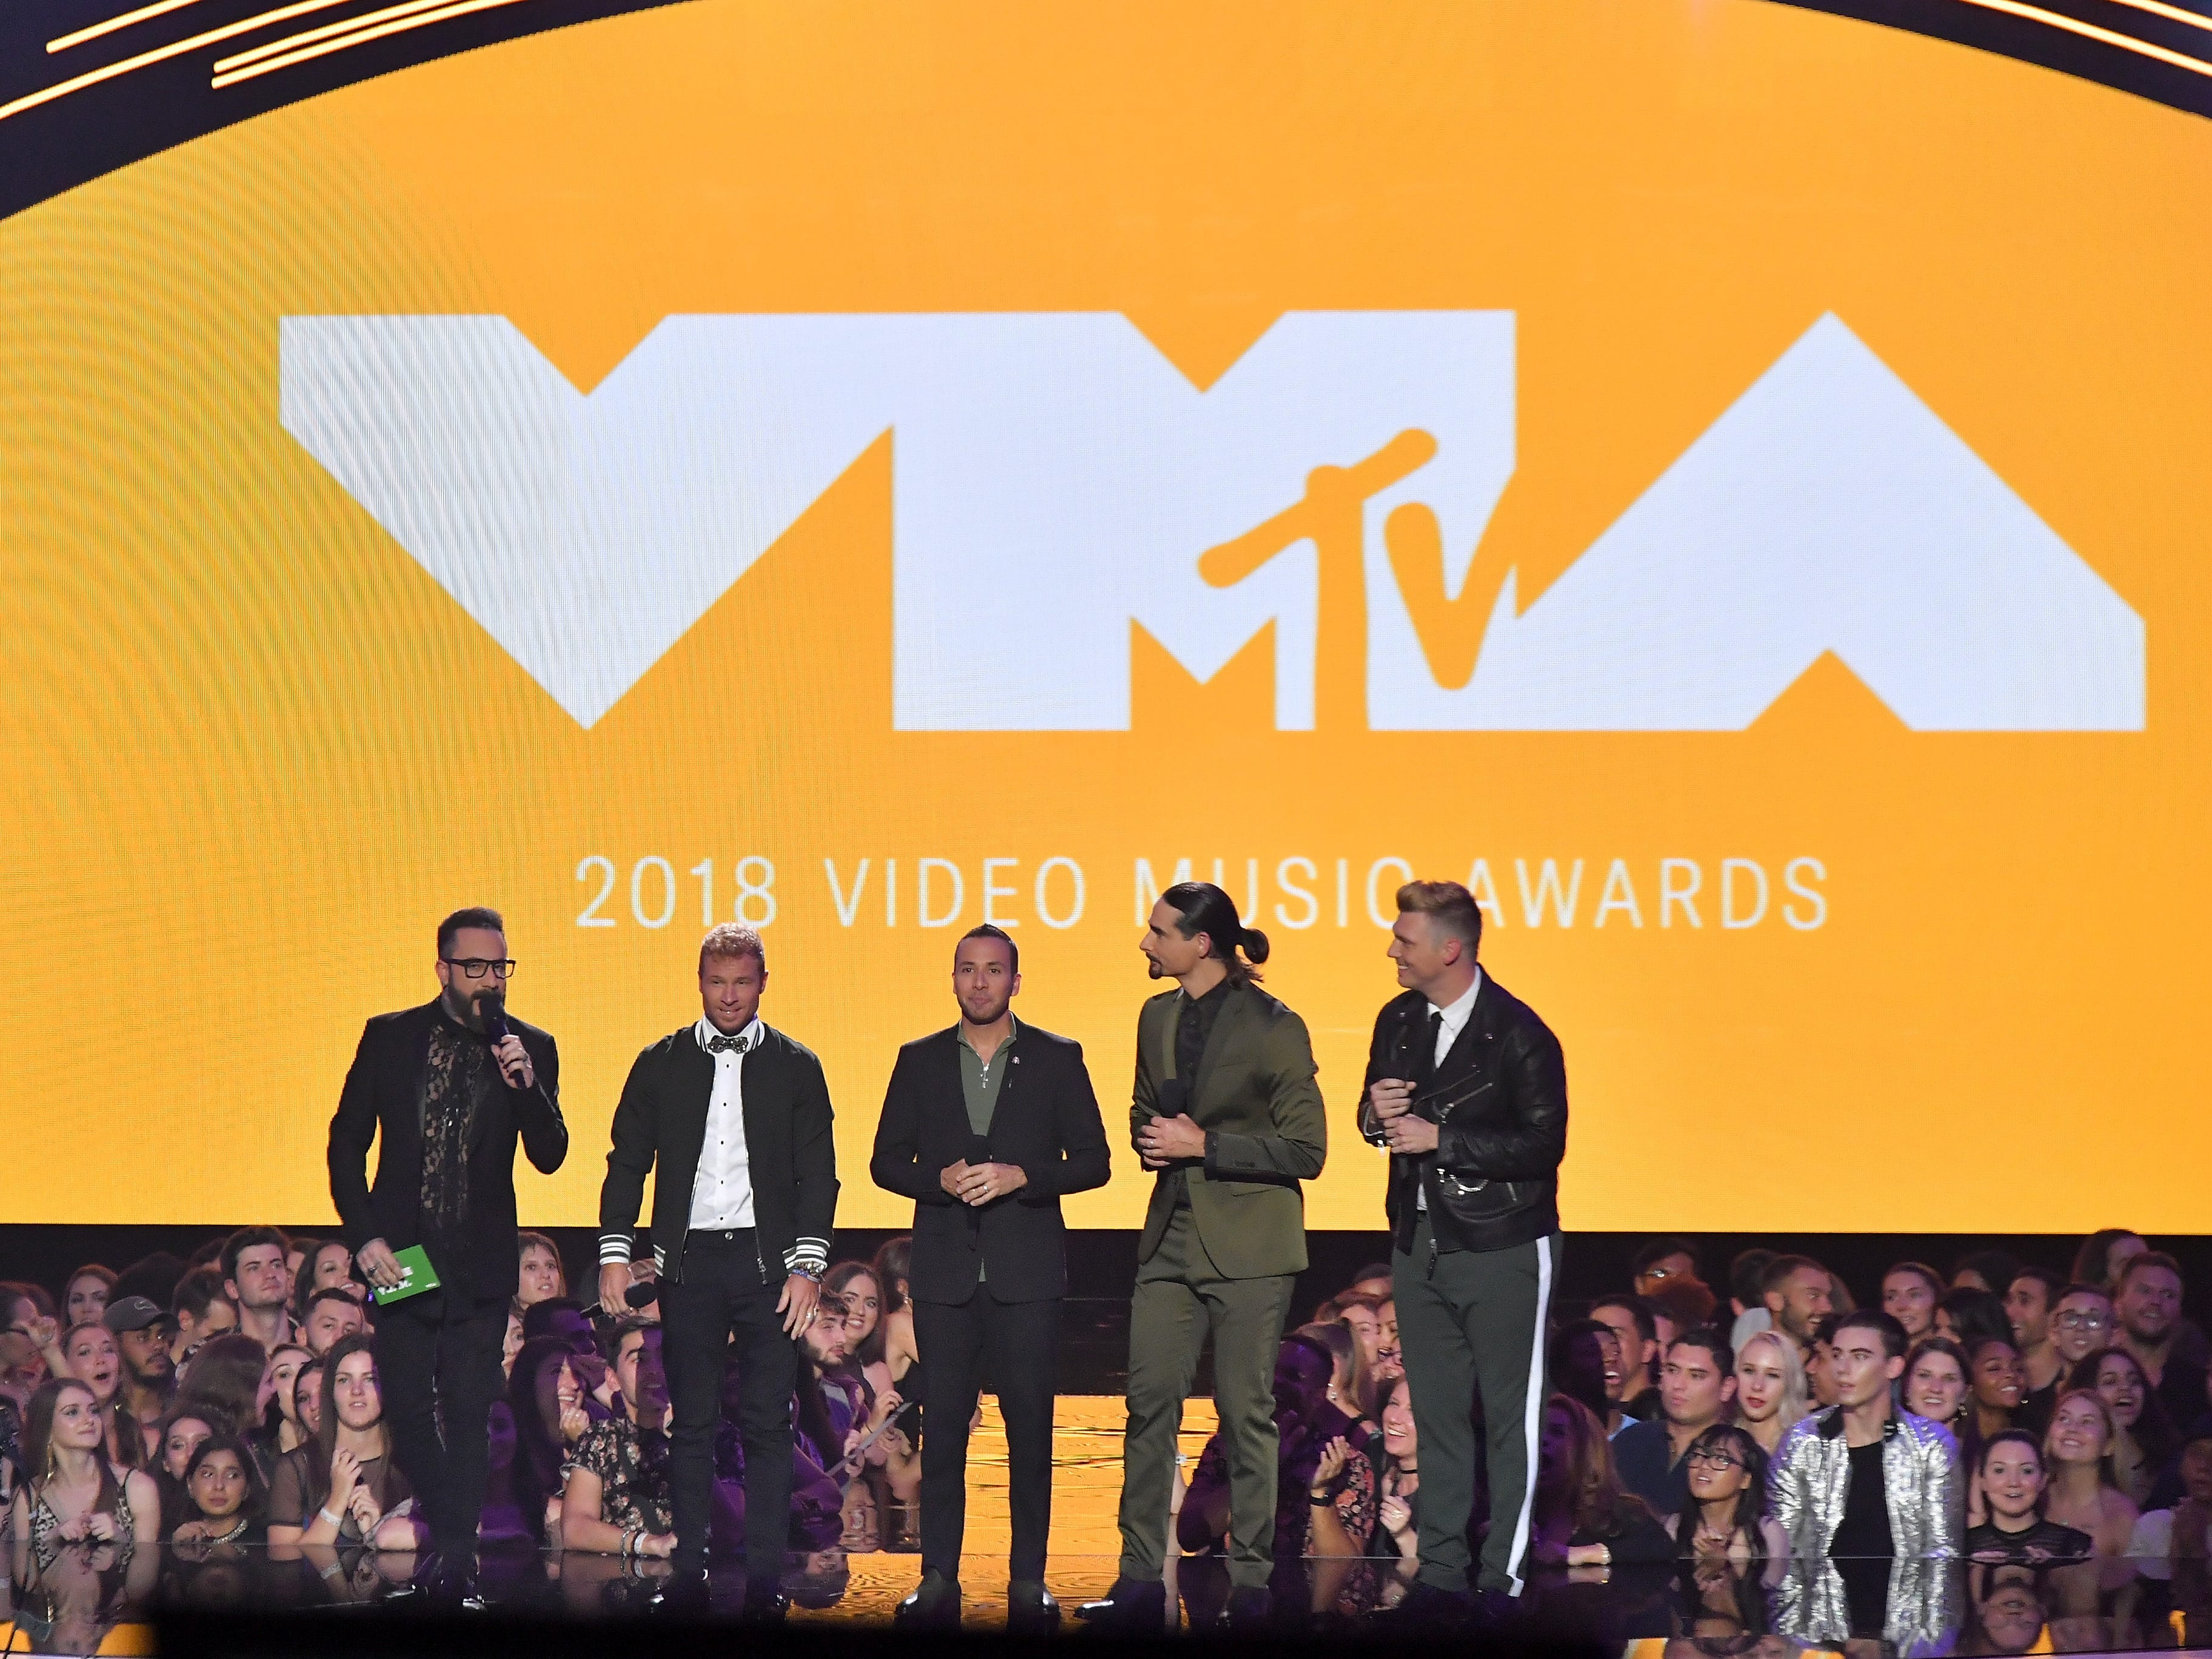 NEW YORK, NY - AUGUST 20: AJ McLean, Brian Littrell, Howie Dorough, Kevin Richardson and Nick Carter of Backstreet Boys speak onstage during the 2018 MTV Video Music Awards at Radio City Music Hall on August 20, 2018 in New York City.  (Photo by Michael Loccisano/Getty Images for MTV) ORG XMIT: 775210297 ORIG FILE ID: 1020371314